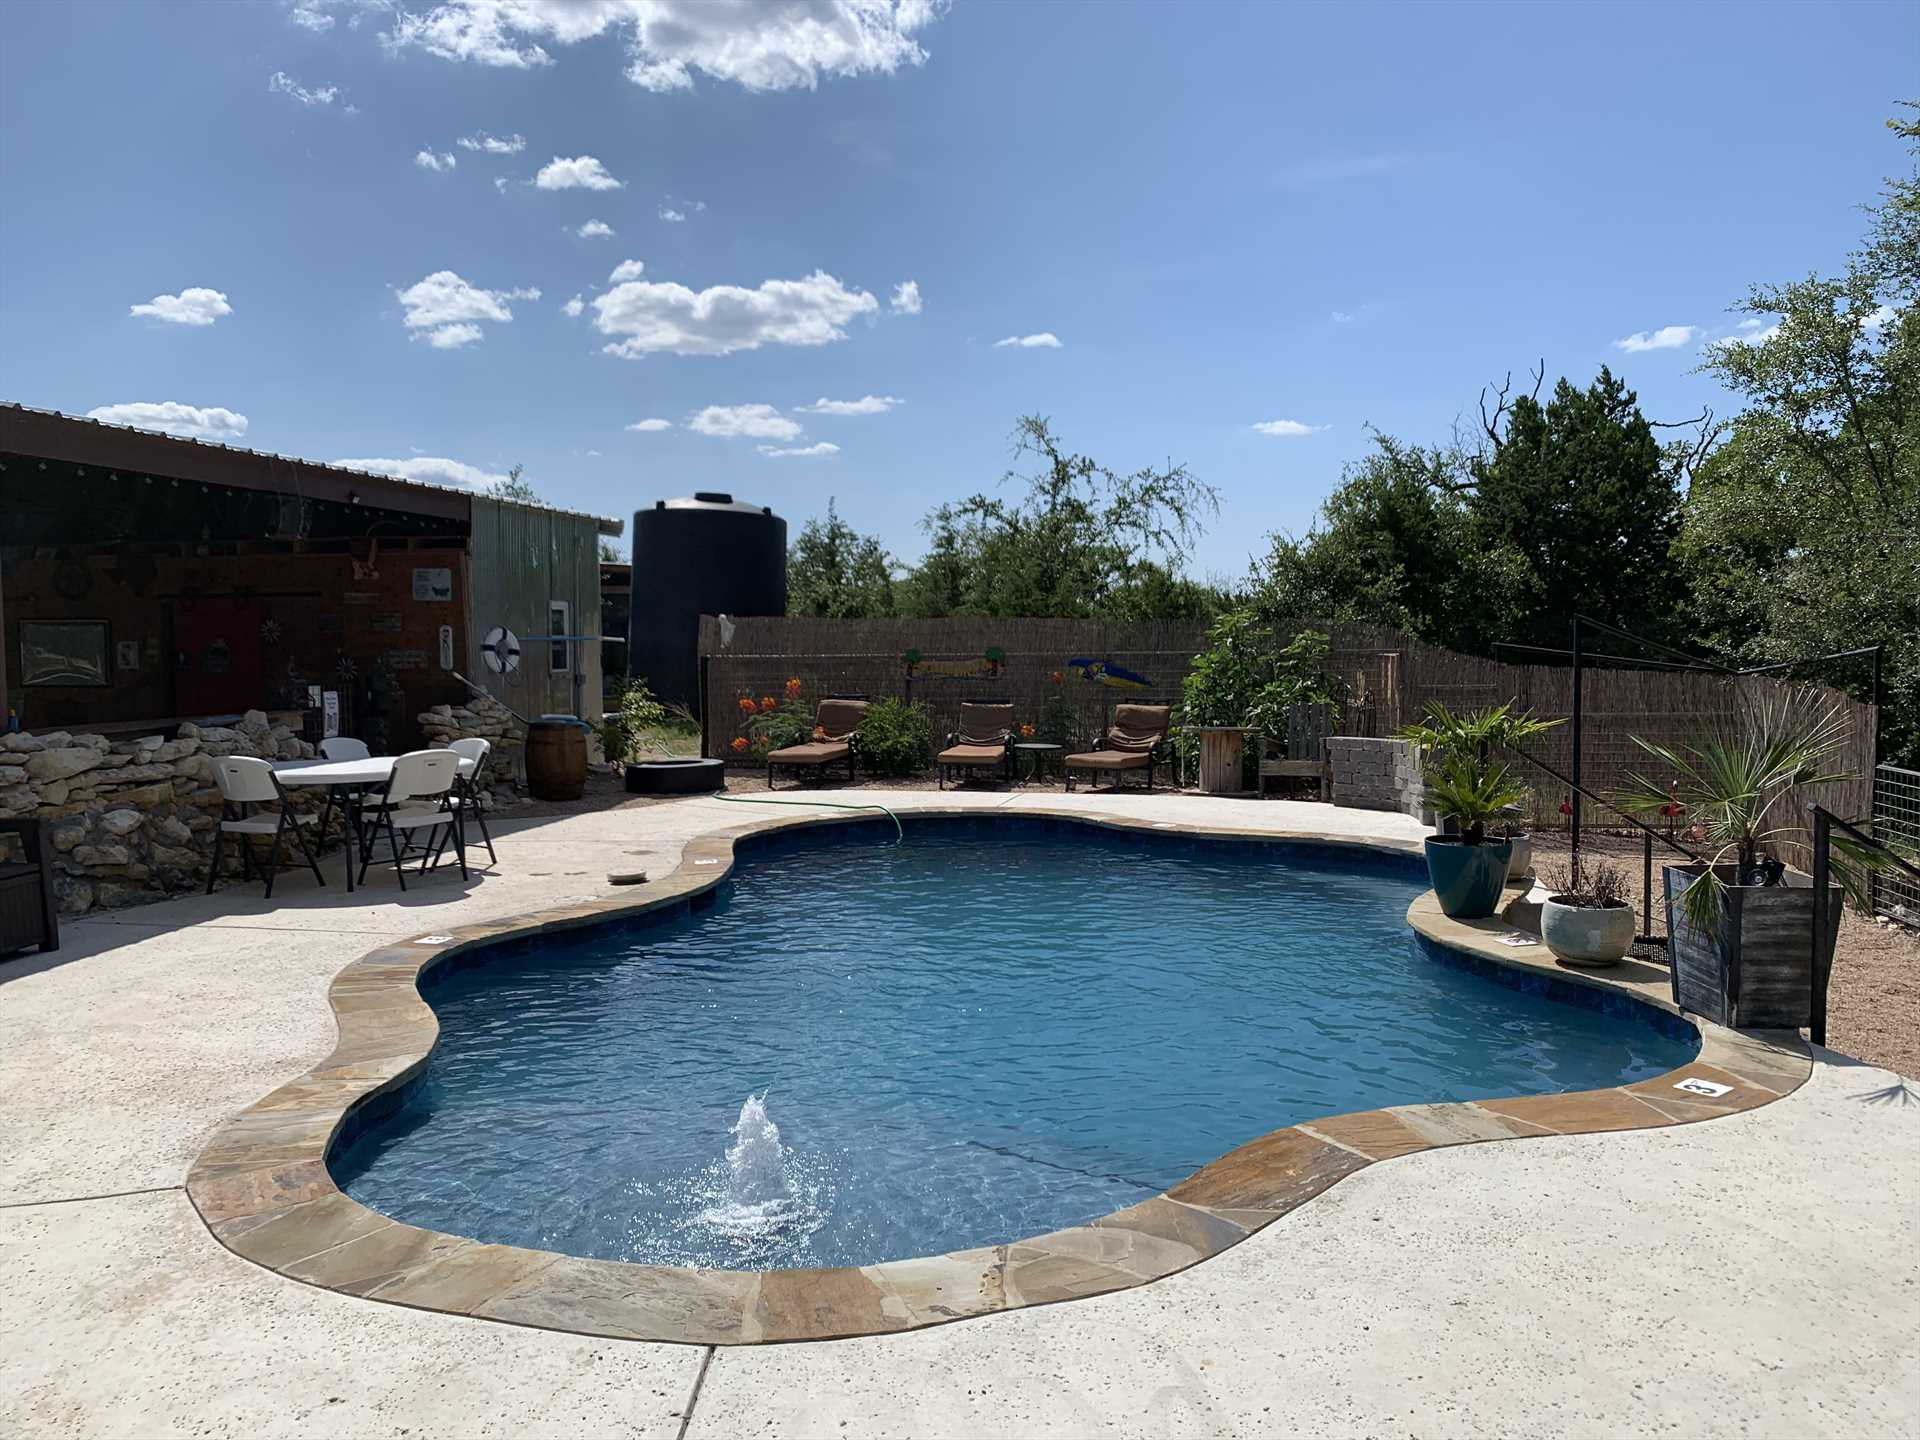 Take the sizzle out of the Texas heat with a cooling dip in the pavilion pool!